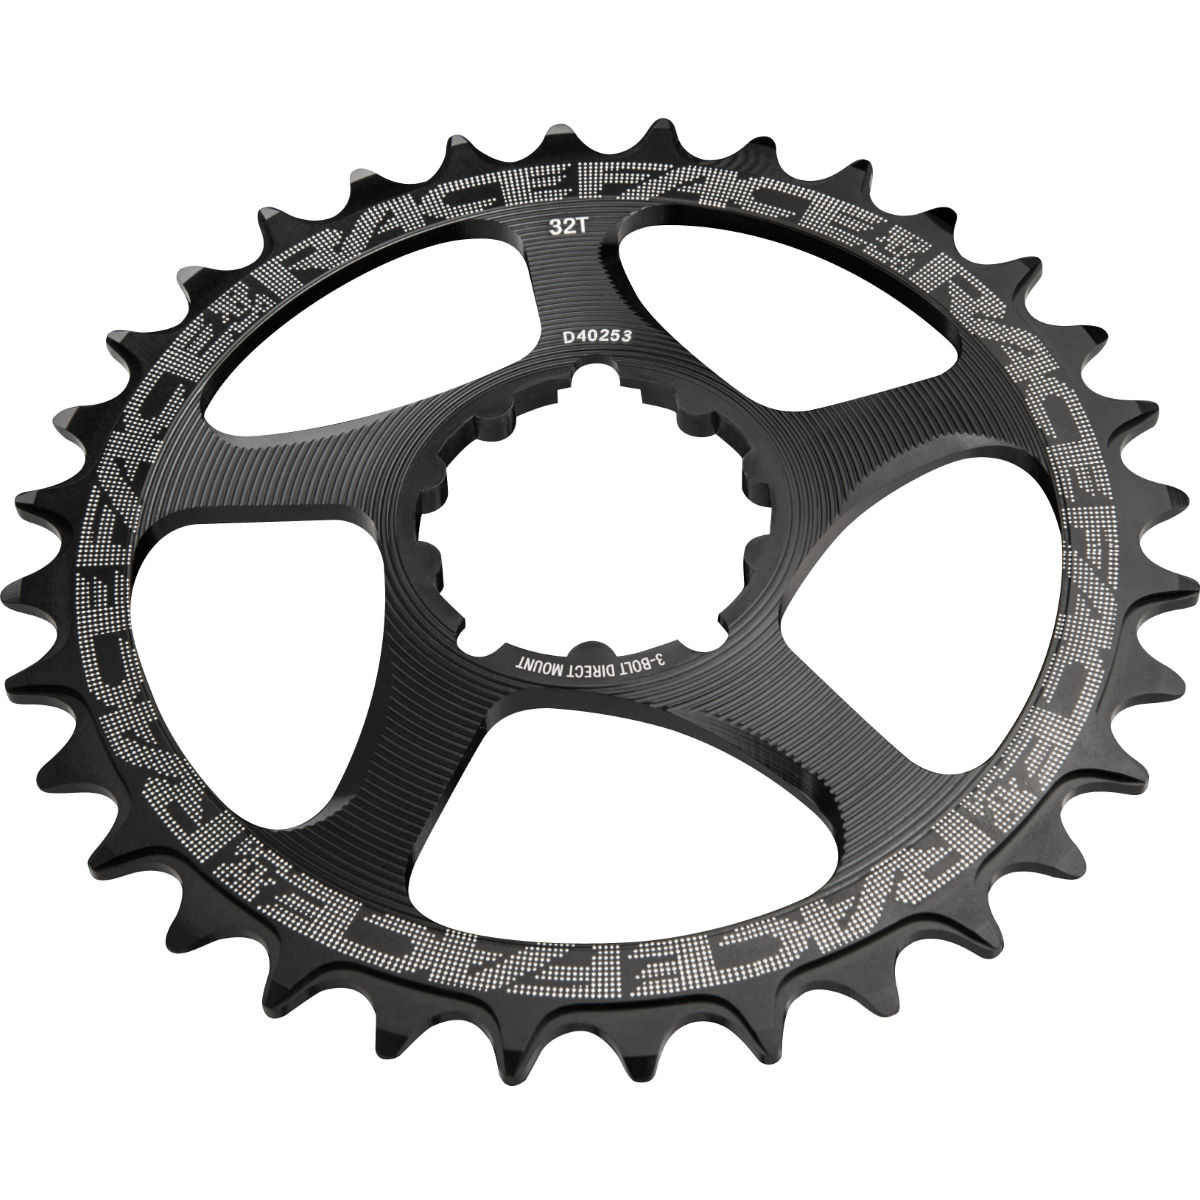 Race Face Direct Mount Sram Narrow/wide Single Chainring - 34t Black